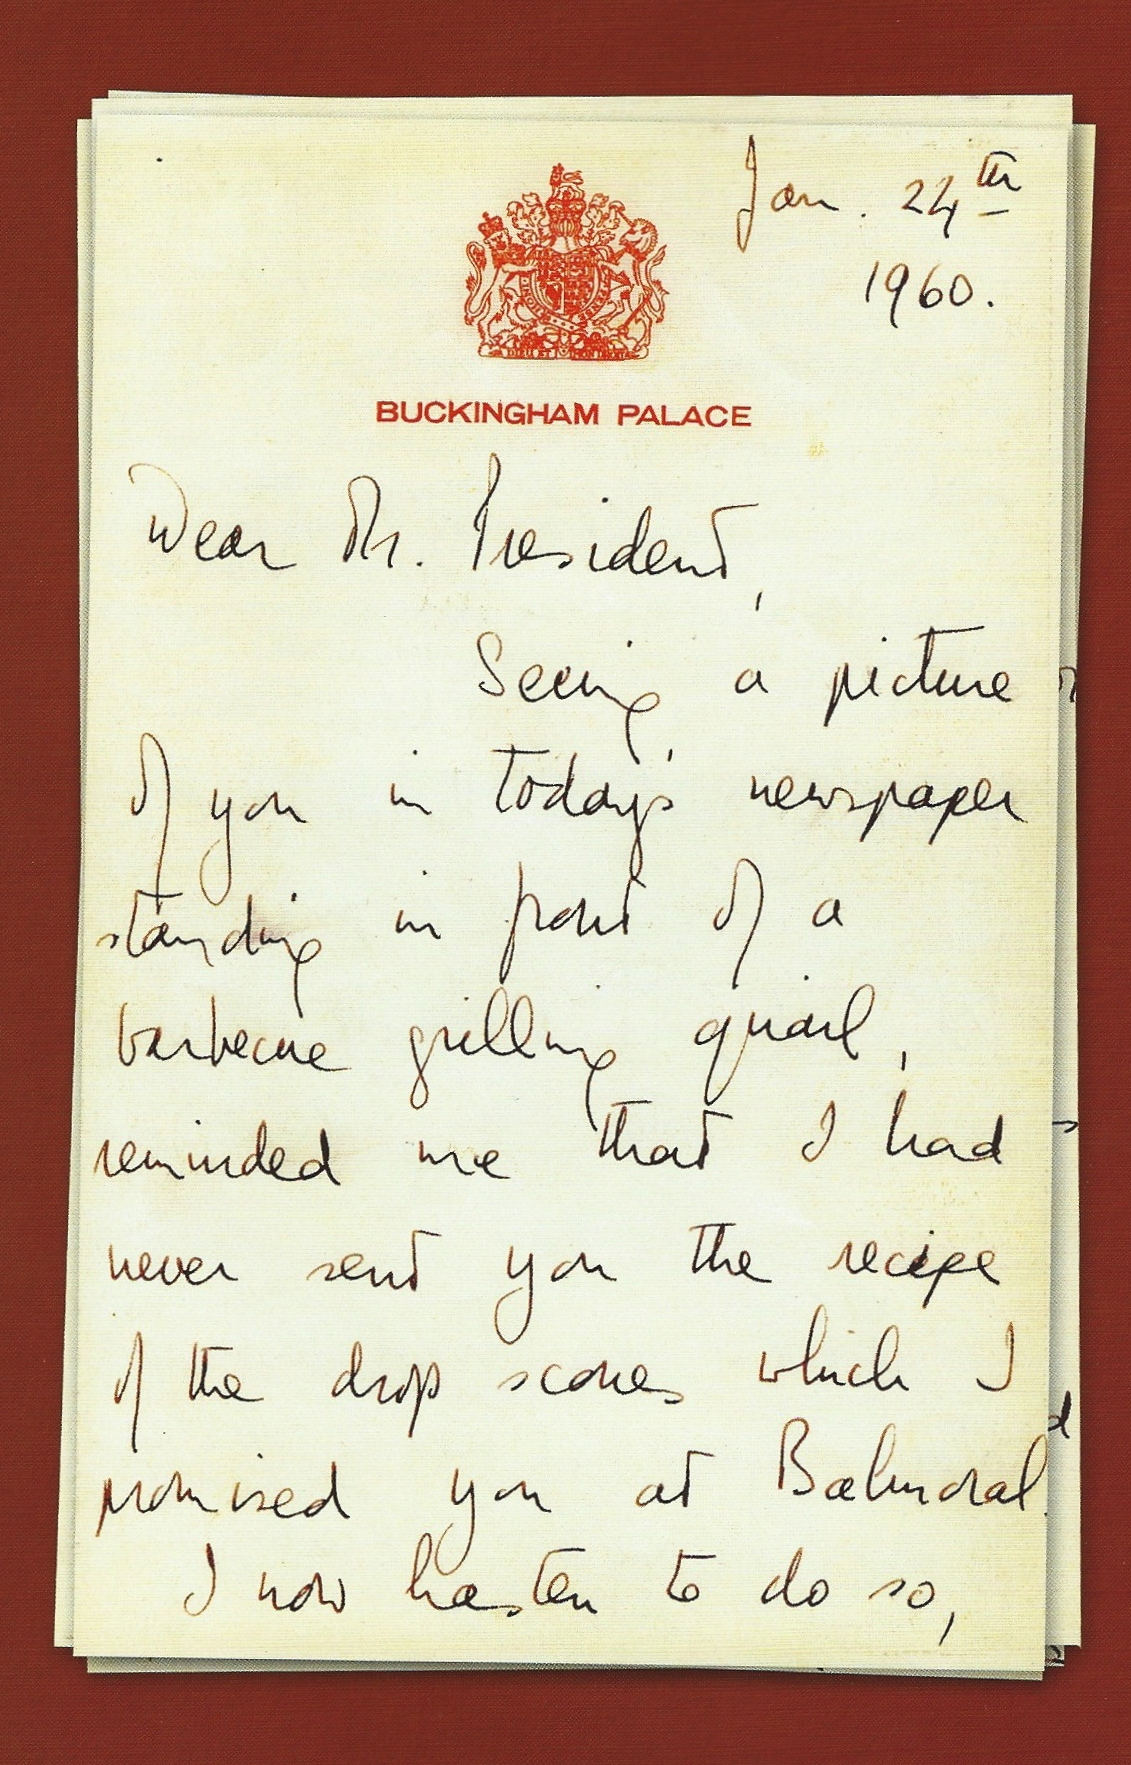 And A Final For Now Word On Scones From Queen Elizabeth